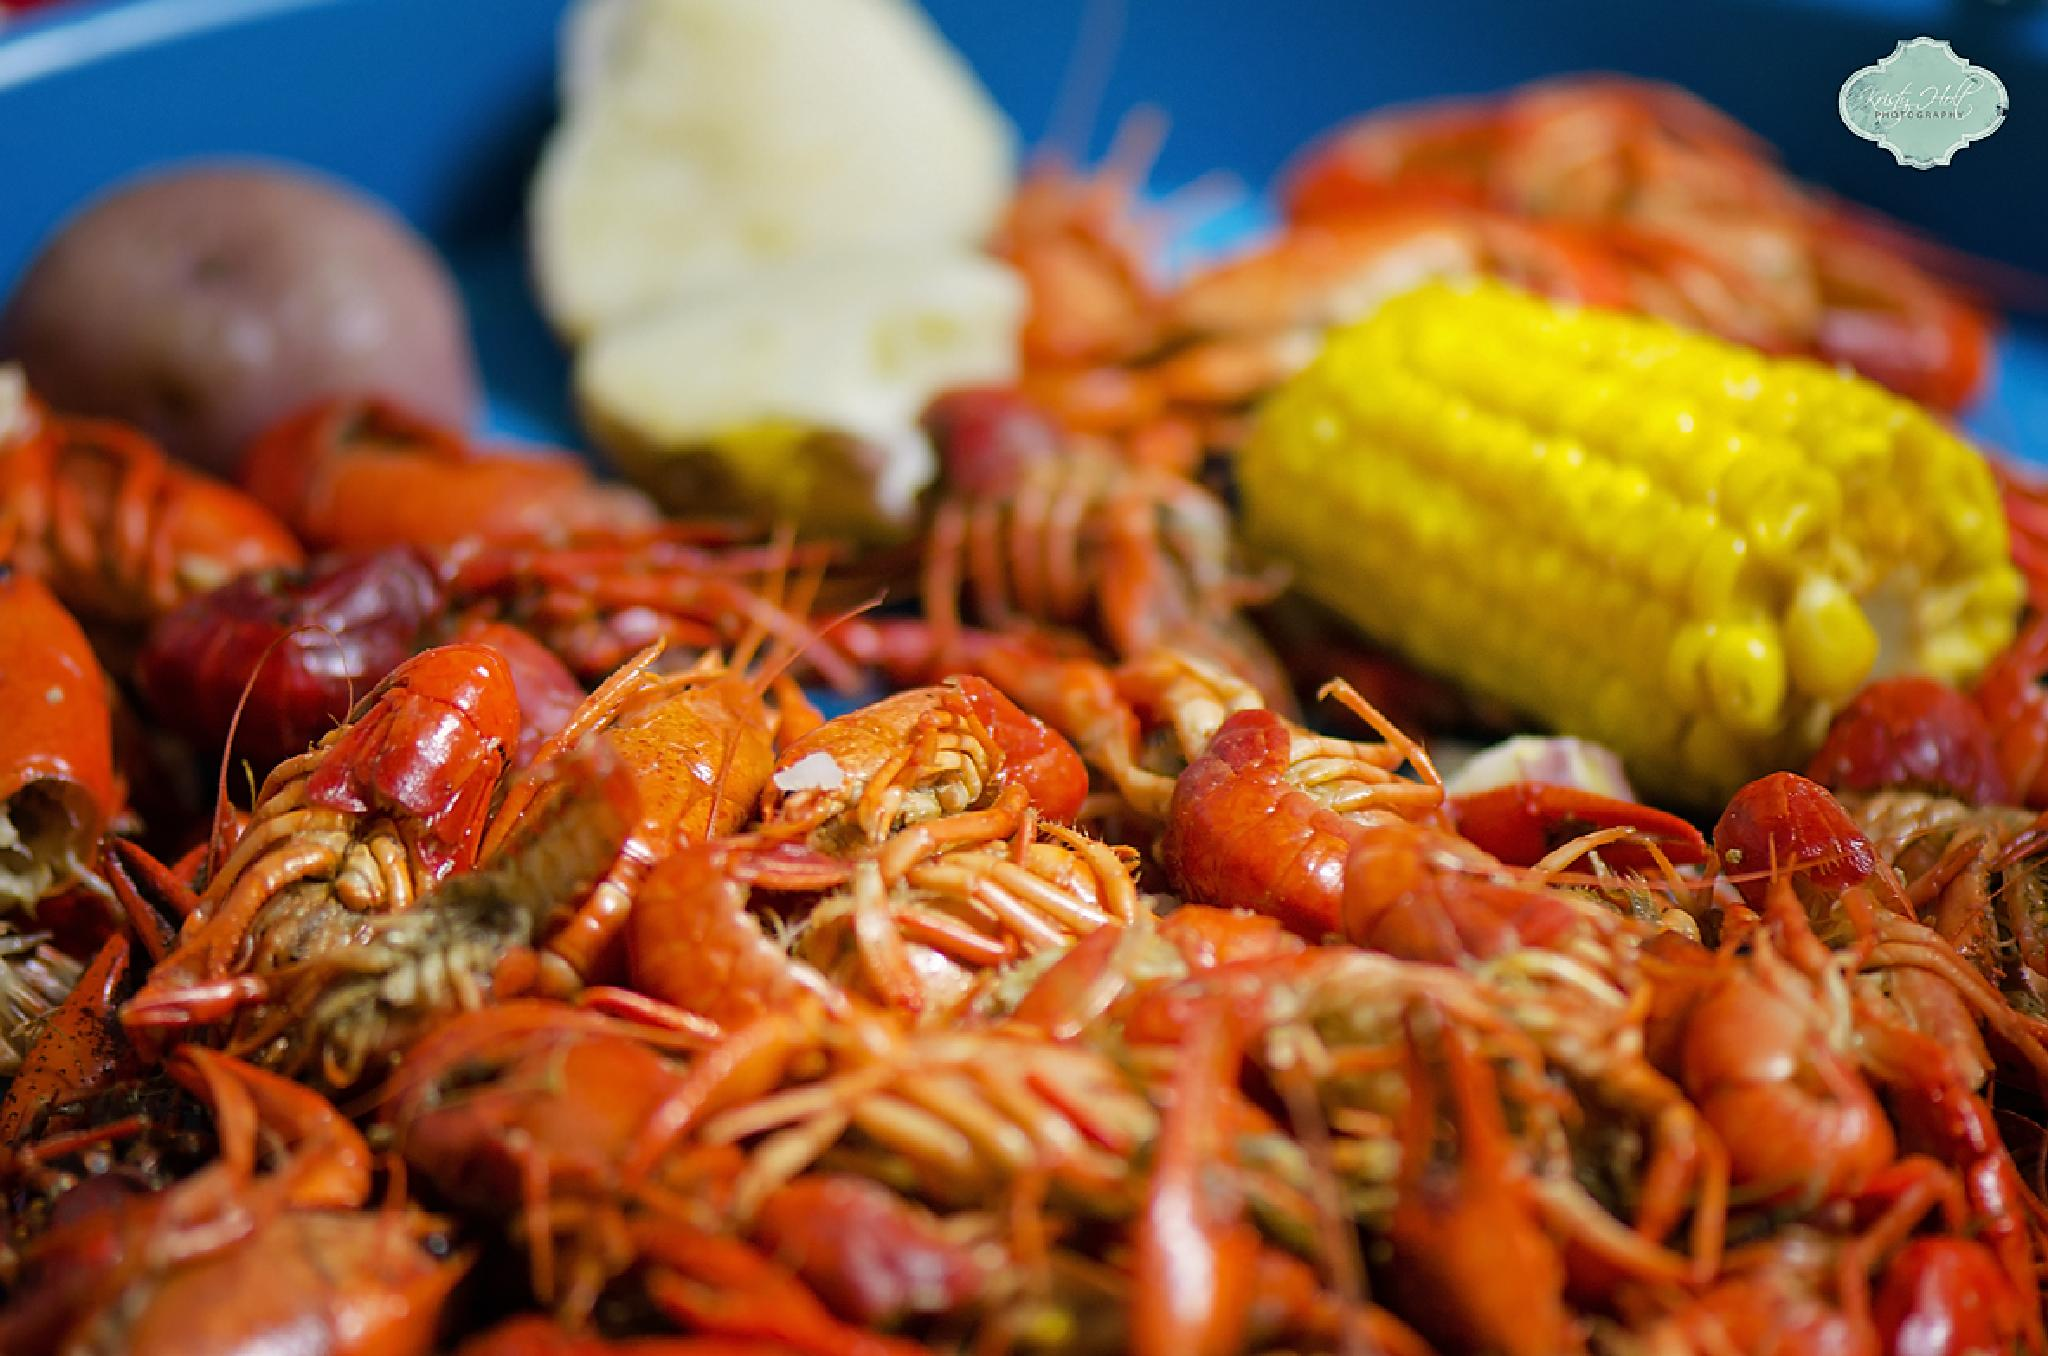 A Louisiana Supper by Kristy Holt